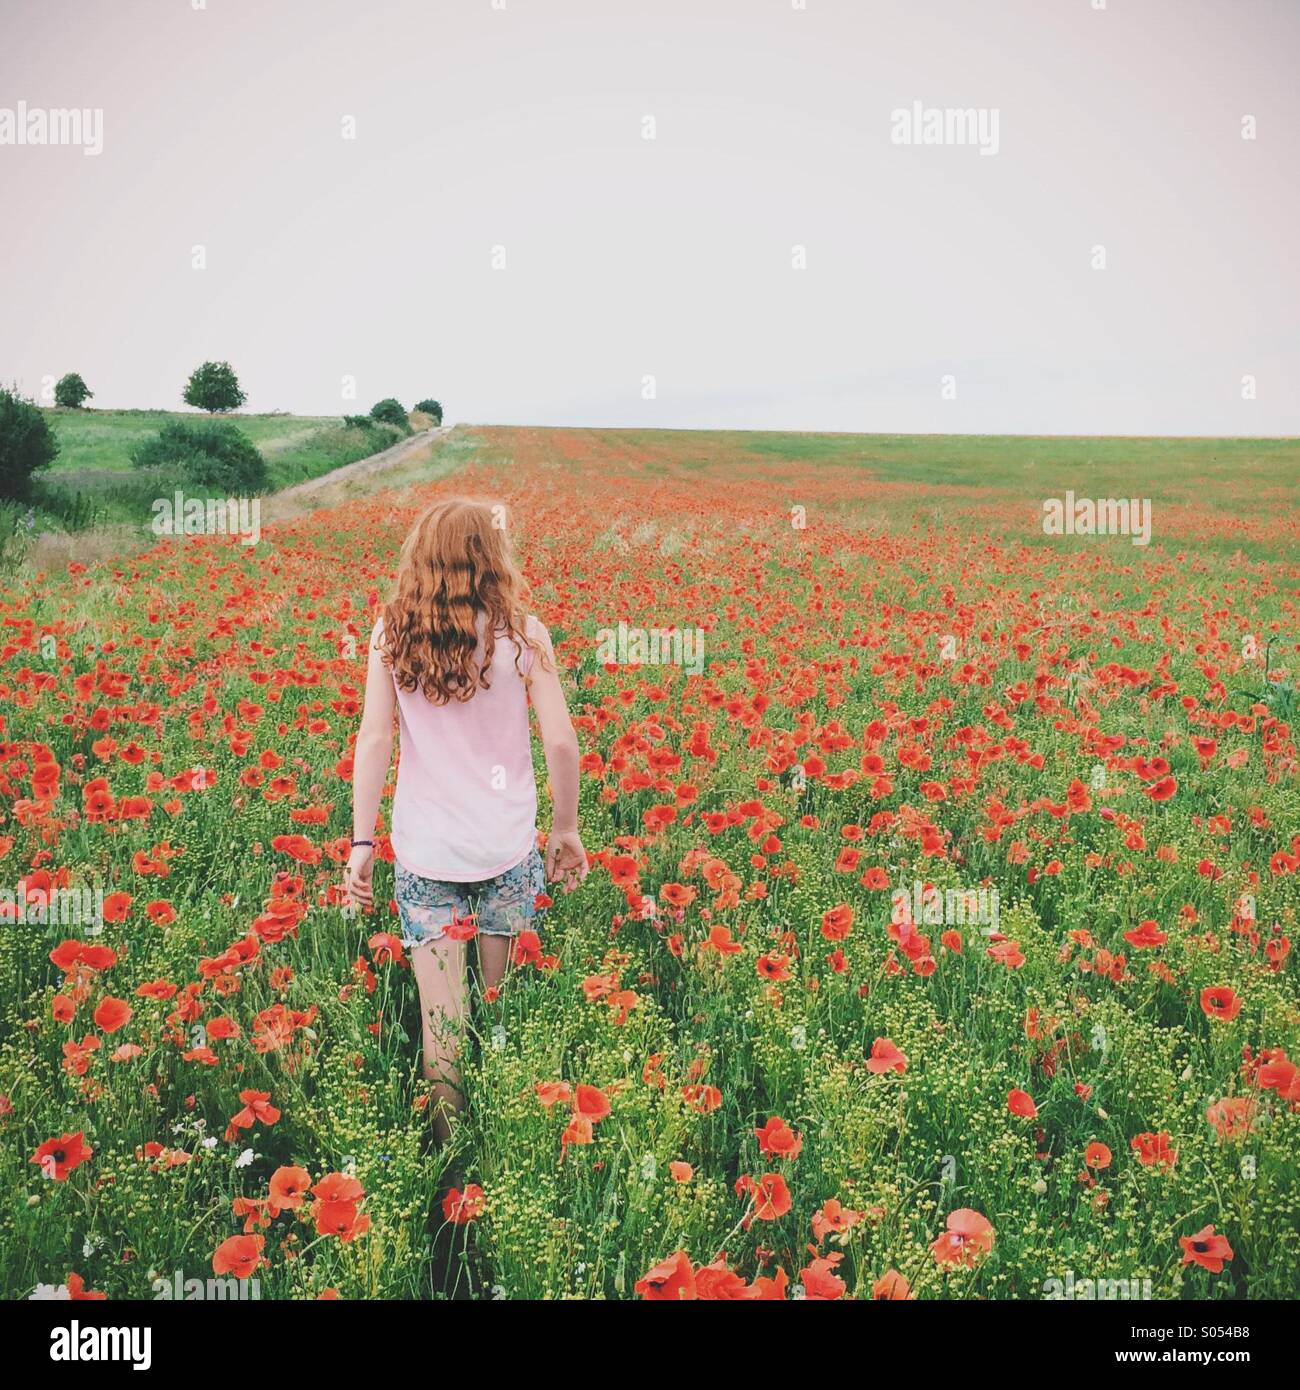 Rear view of girl with red hair walking in a poppy field Stock Photo